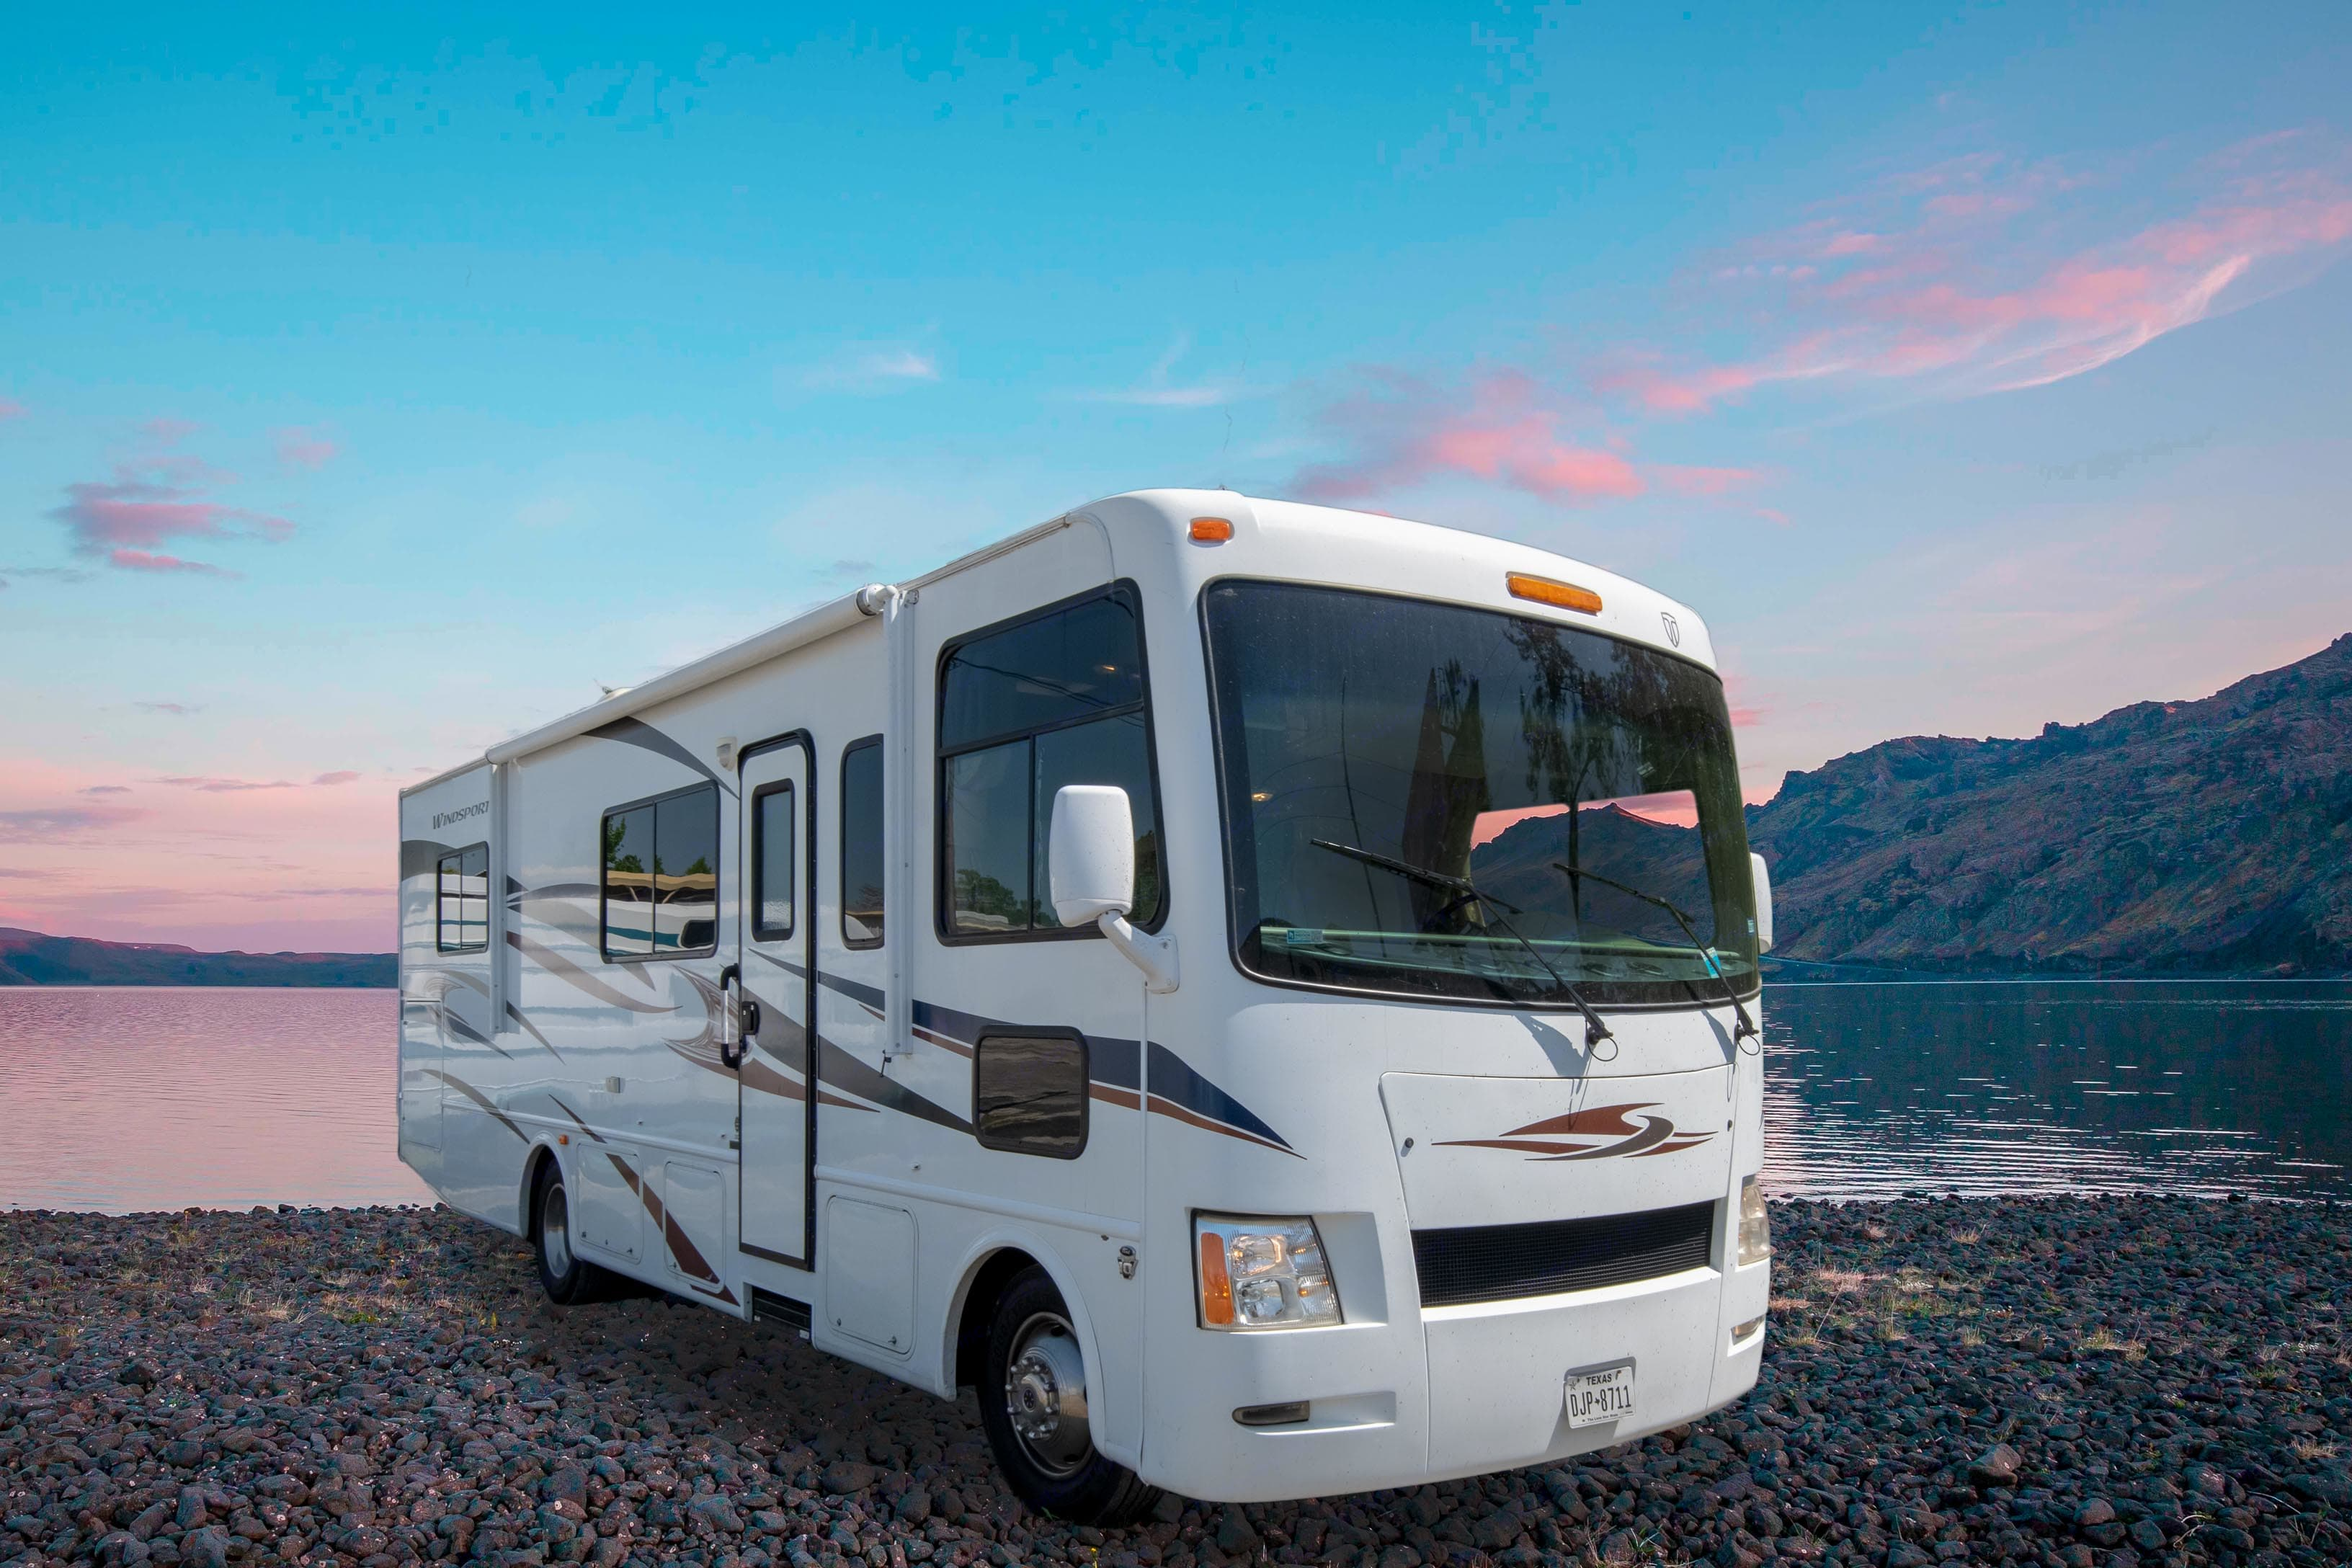 Actual RV. Changed background*. Thor Motor Coach Windsport 2012